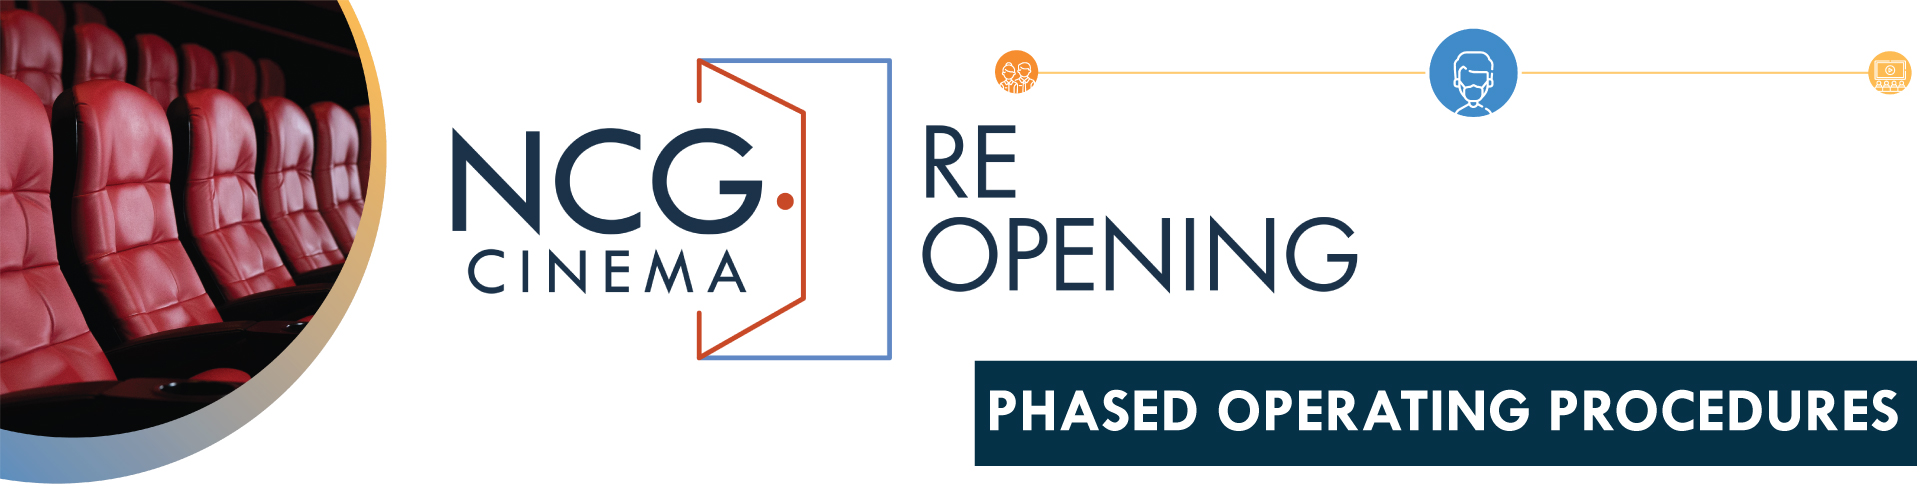 PHASE-RE-OPENING